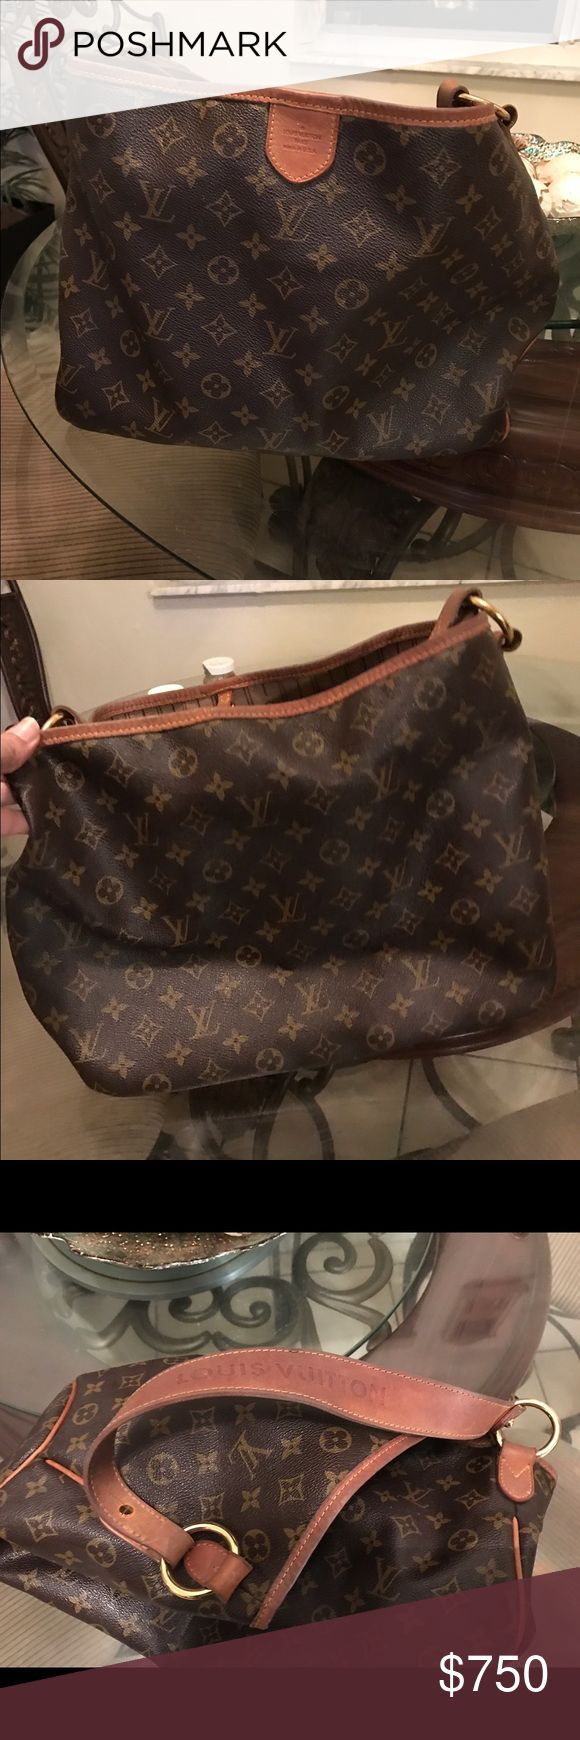 Authentic Louis Vuitton bag! Authentic Louis Vuitton bag bought it a few years ago the exterior is like new a little wear and tear on the strap nothing noticeable interior is a little dirty needs to be cleaned up Louis Vuitton Bags Totes